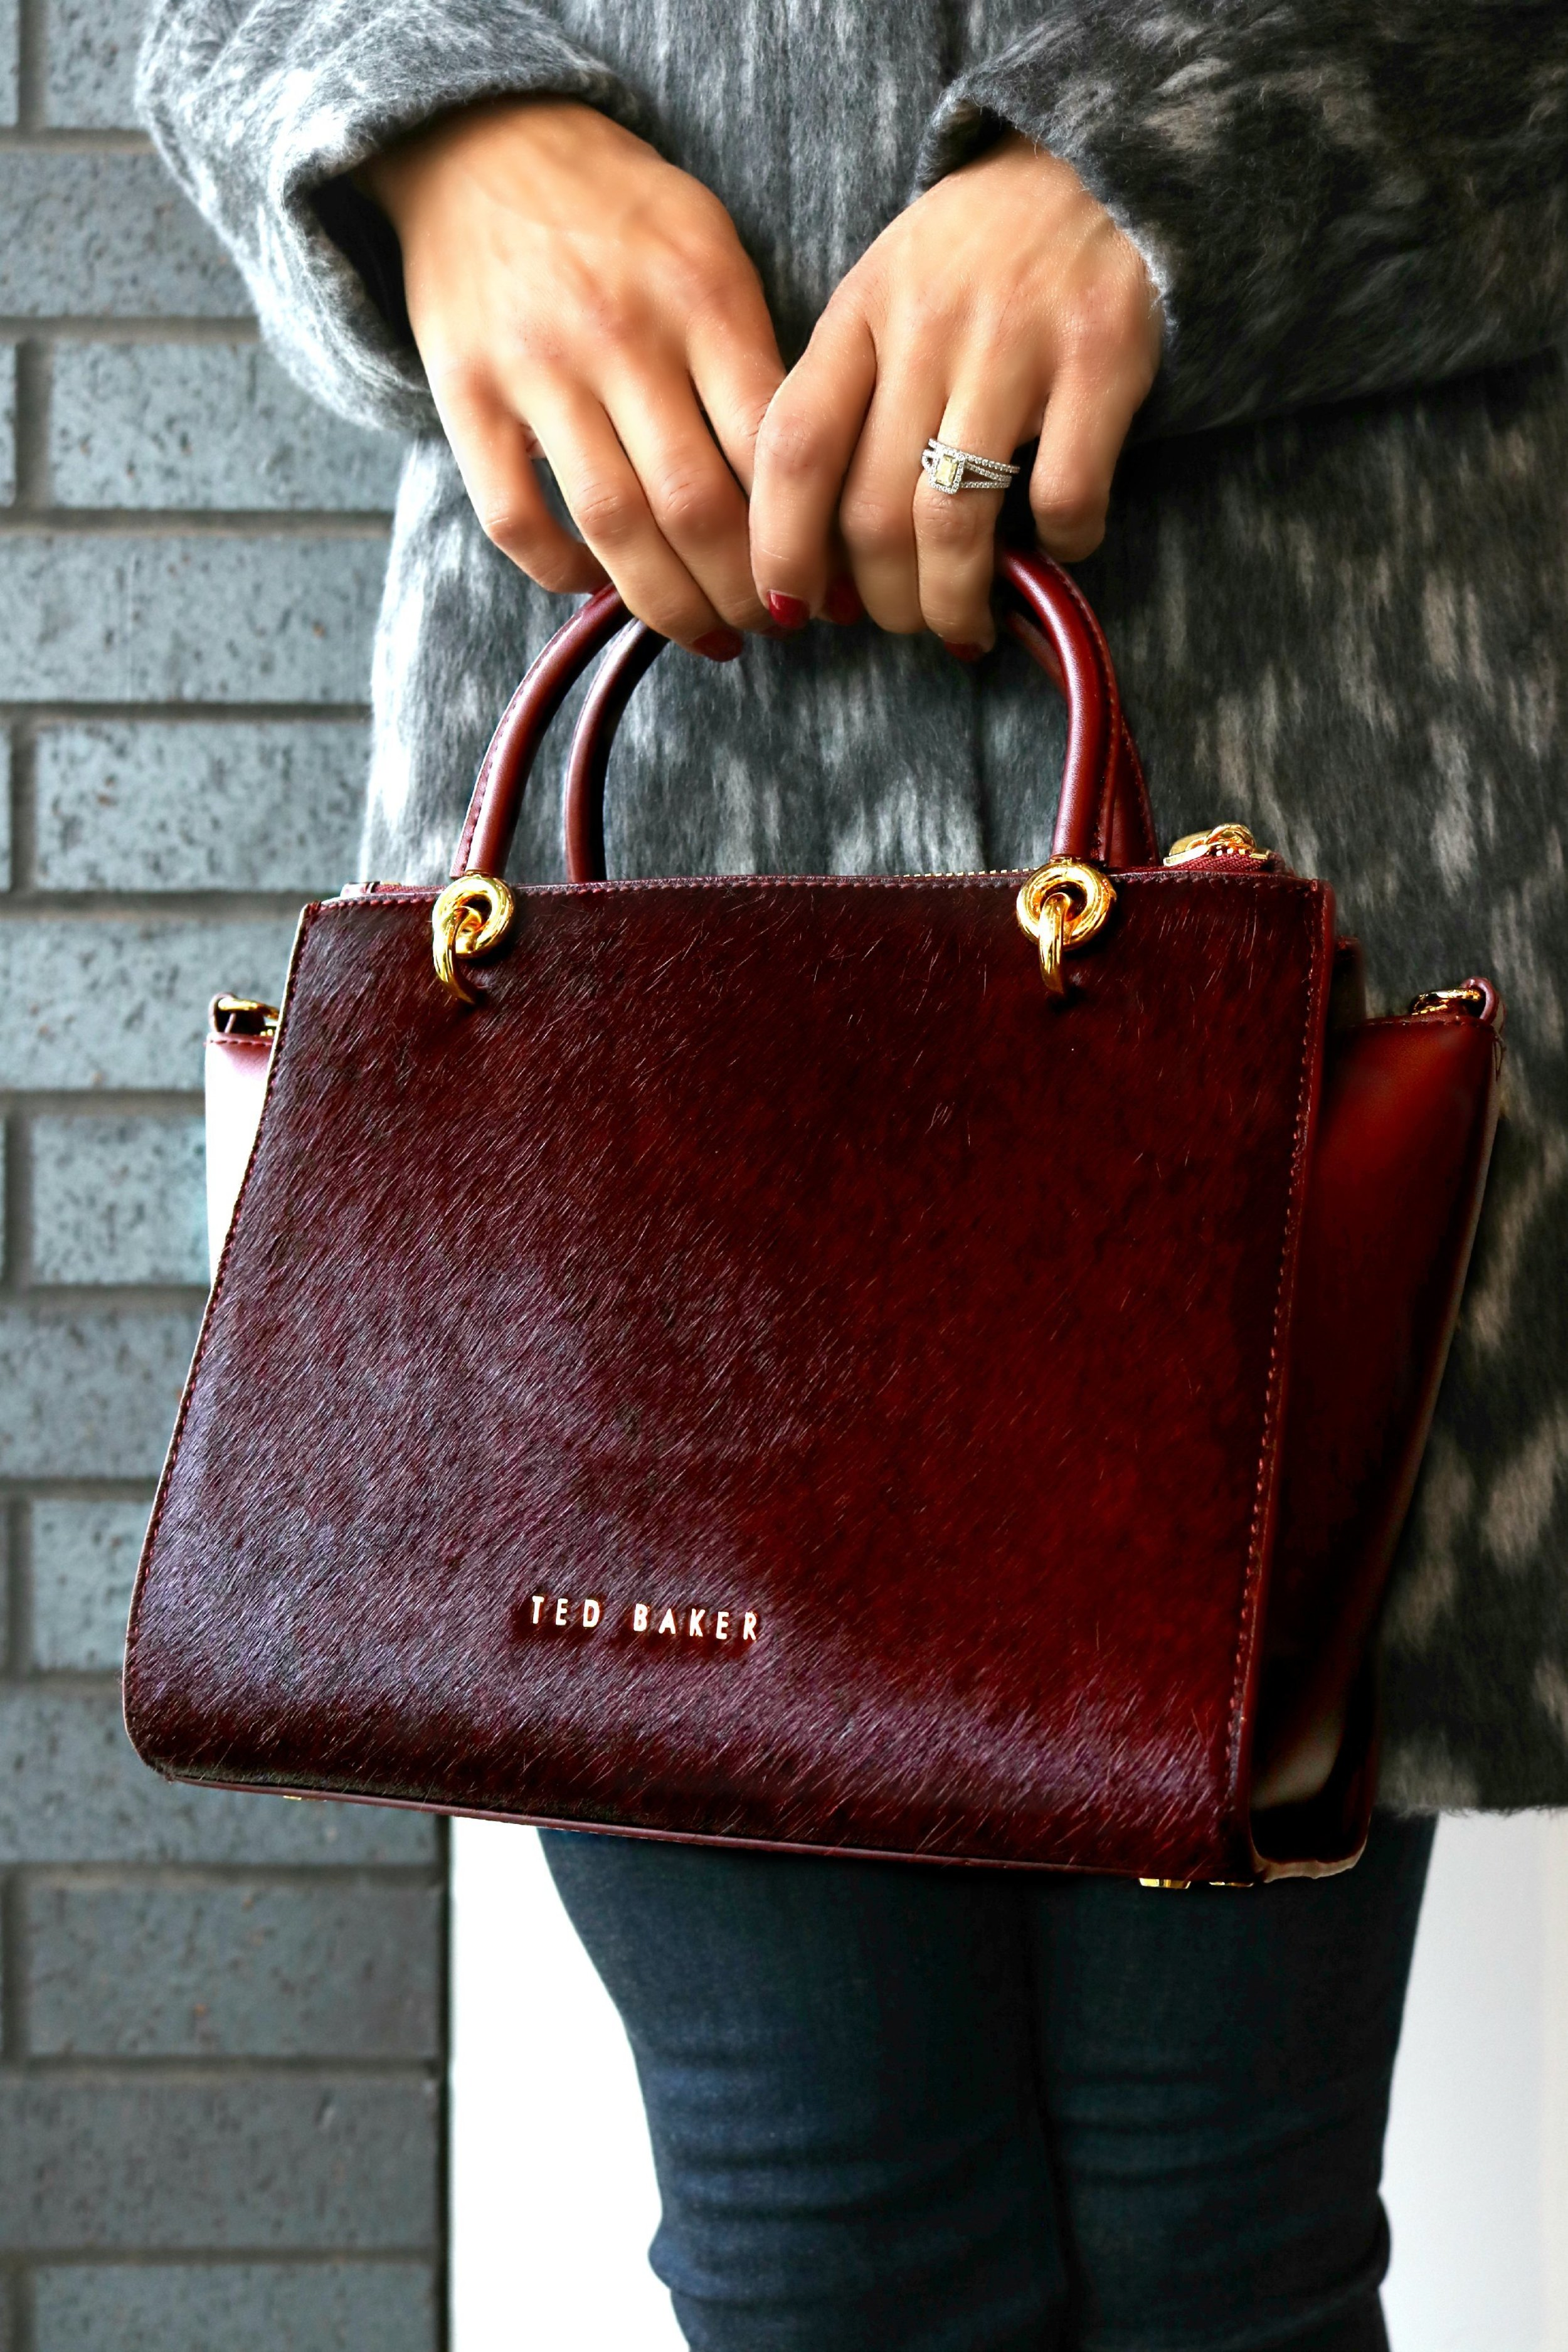 Ted Baker Exotic Handbag Available In Store Only